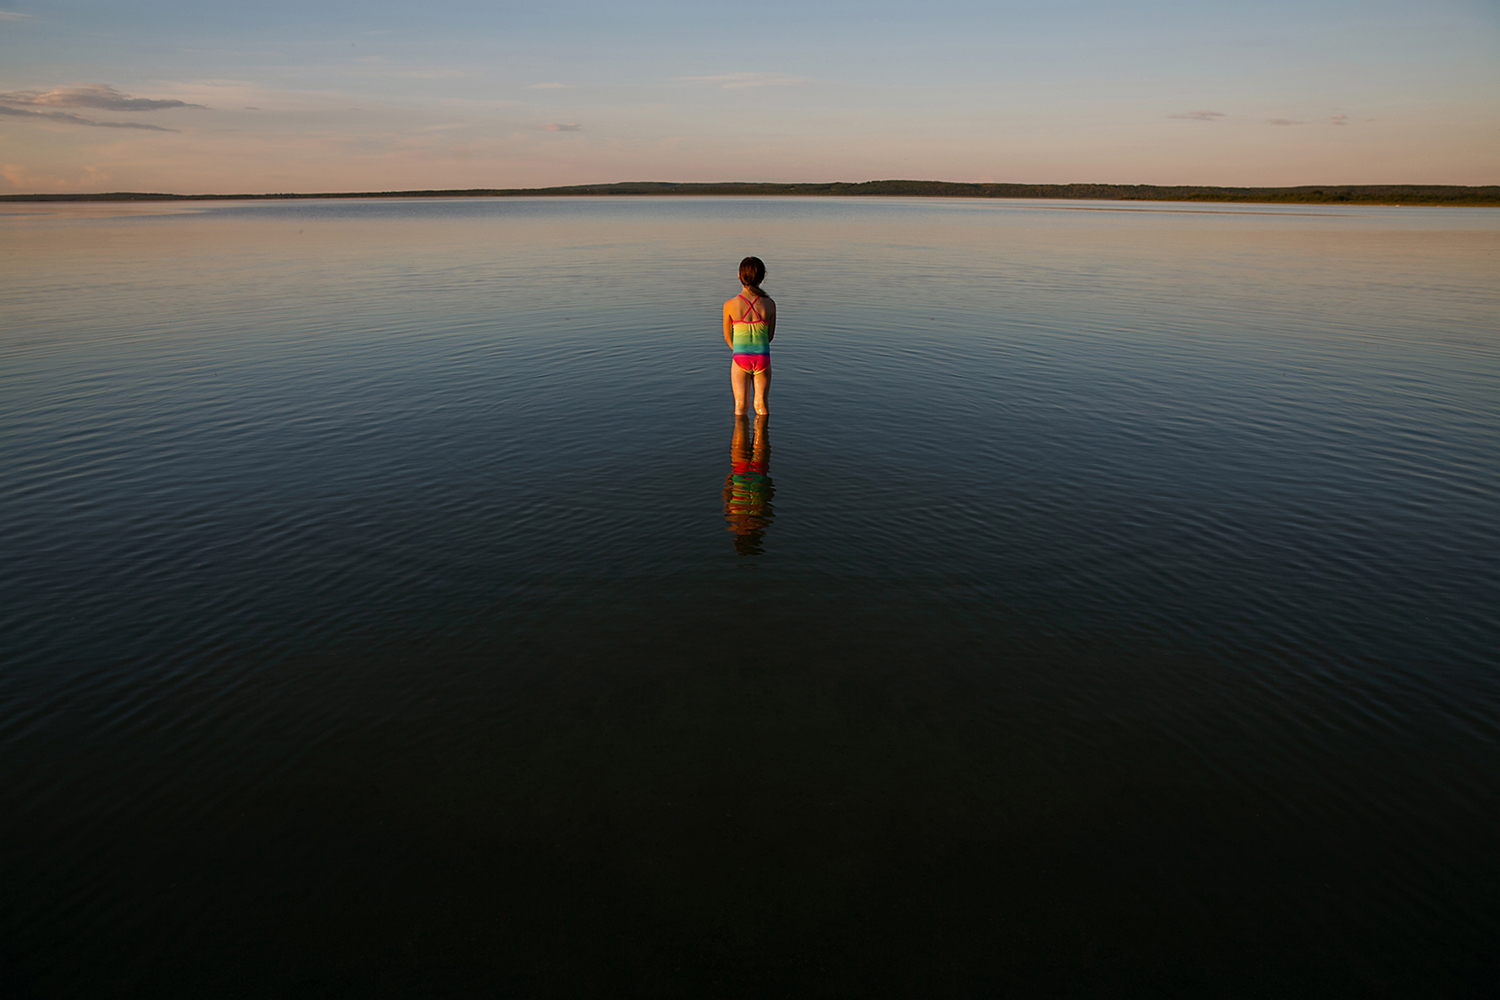 Girl standing out in a calm lake as the sun sets